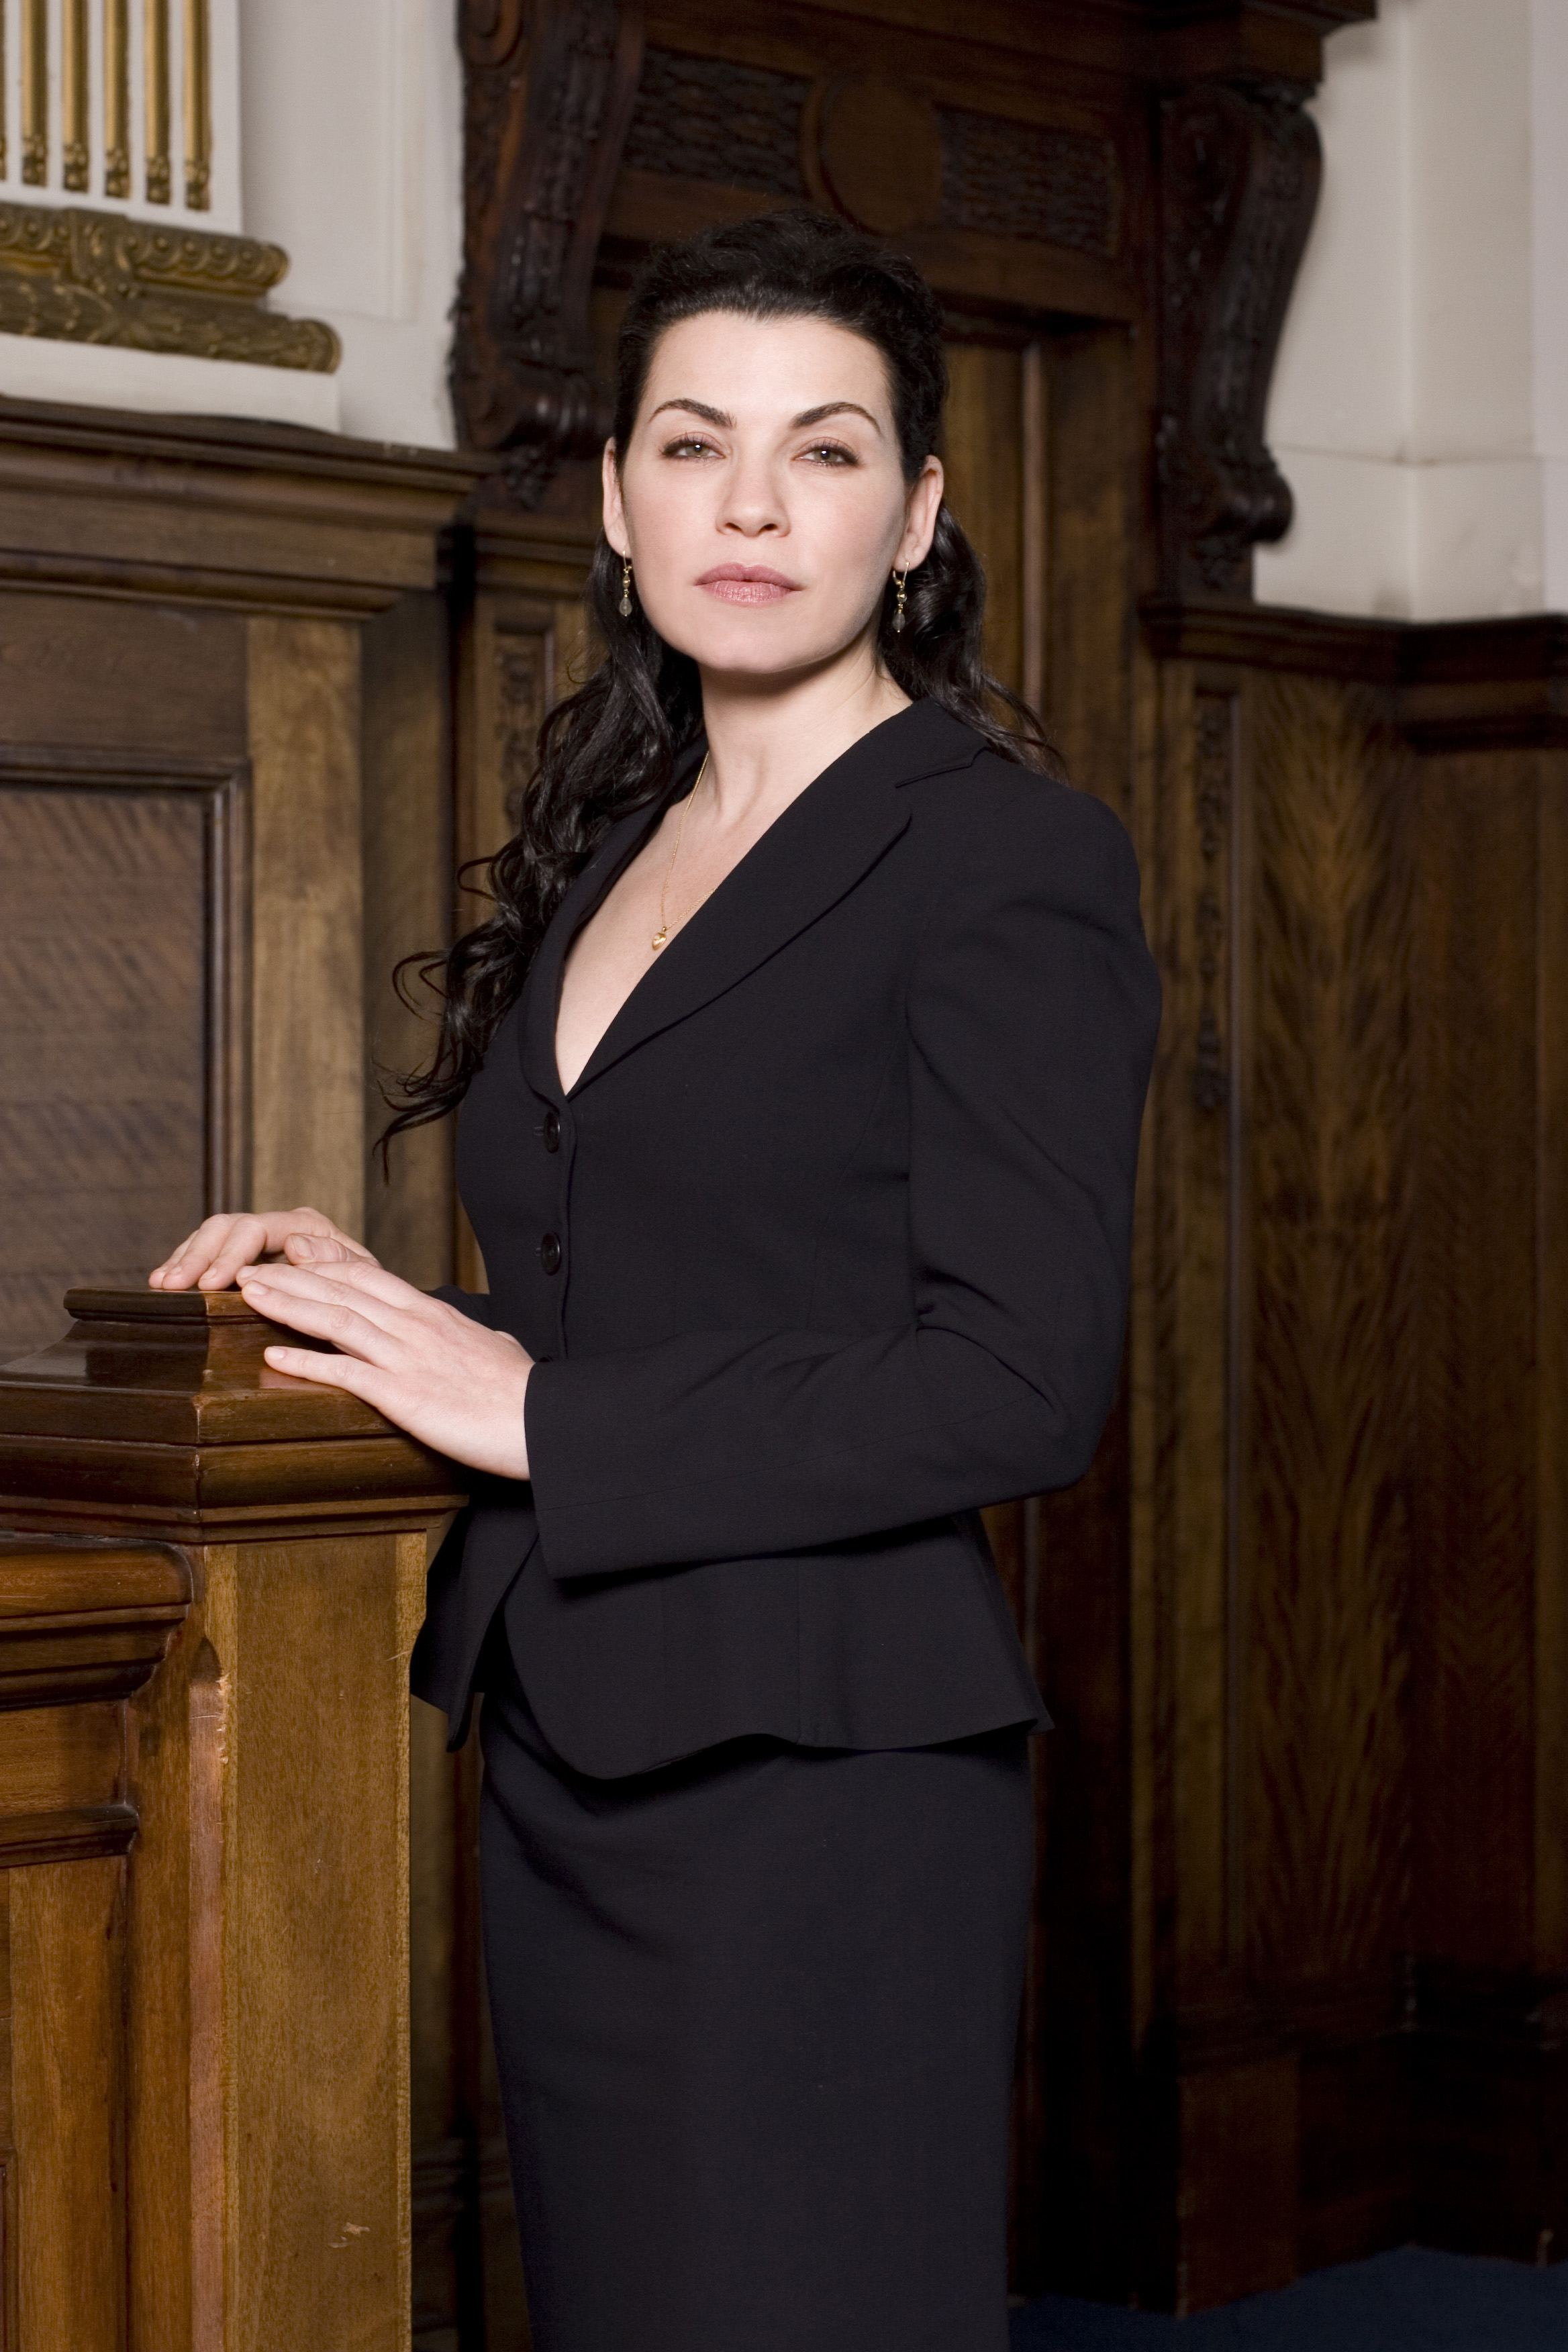 Canterbury's Law promos - Julianna Margulies Photo ...